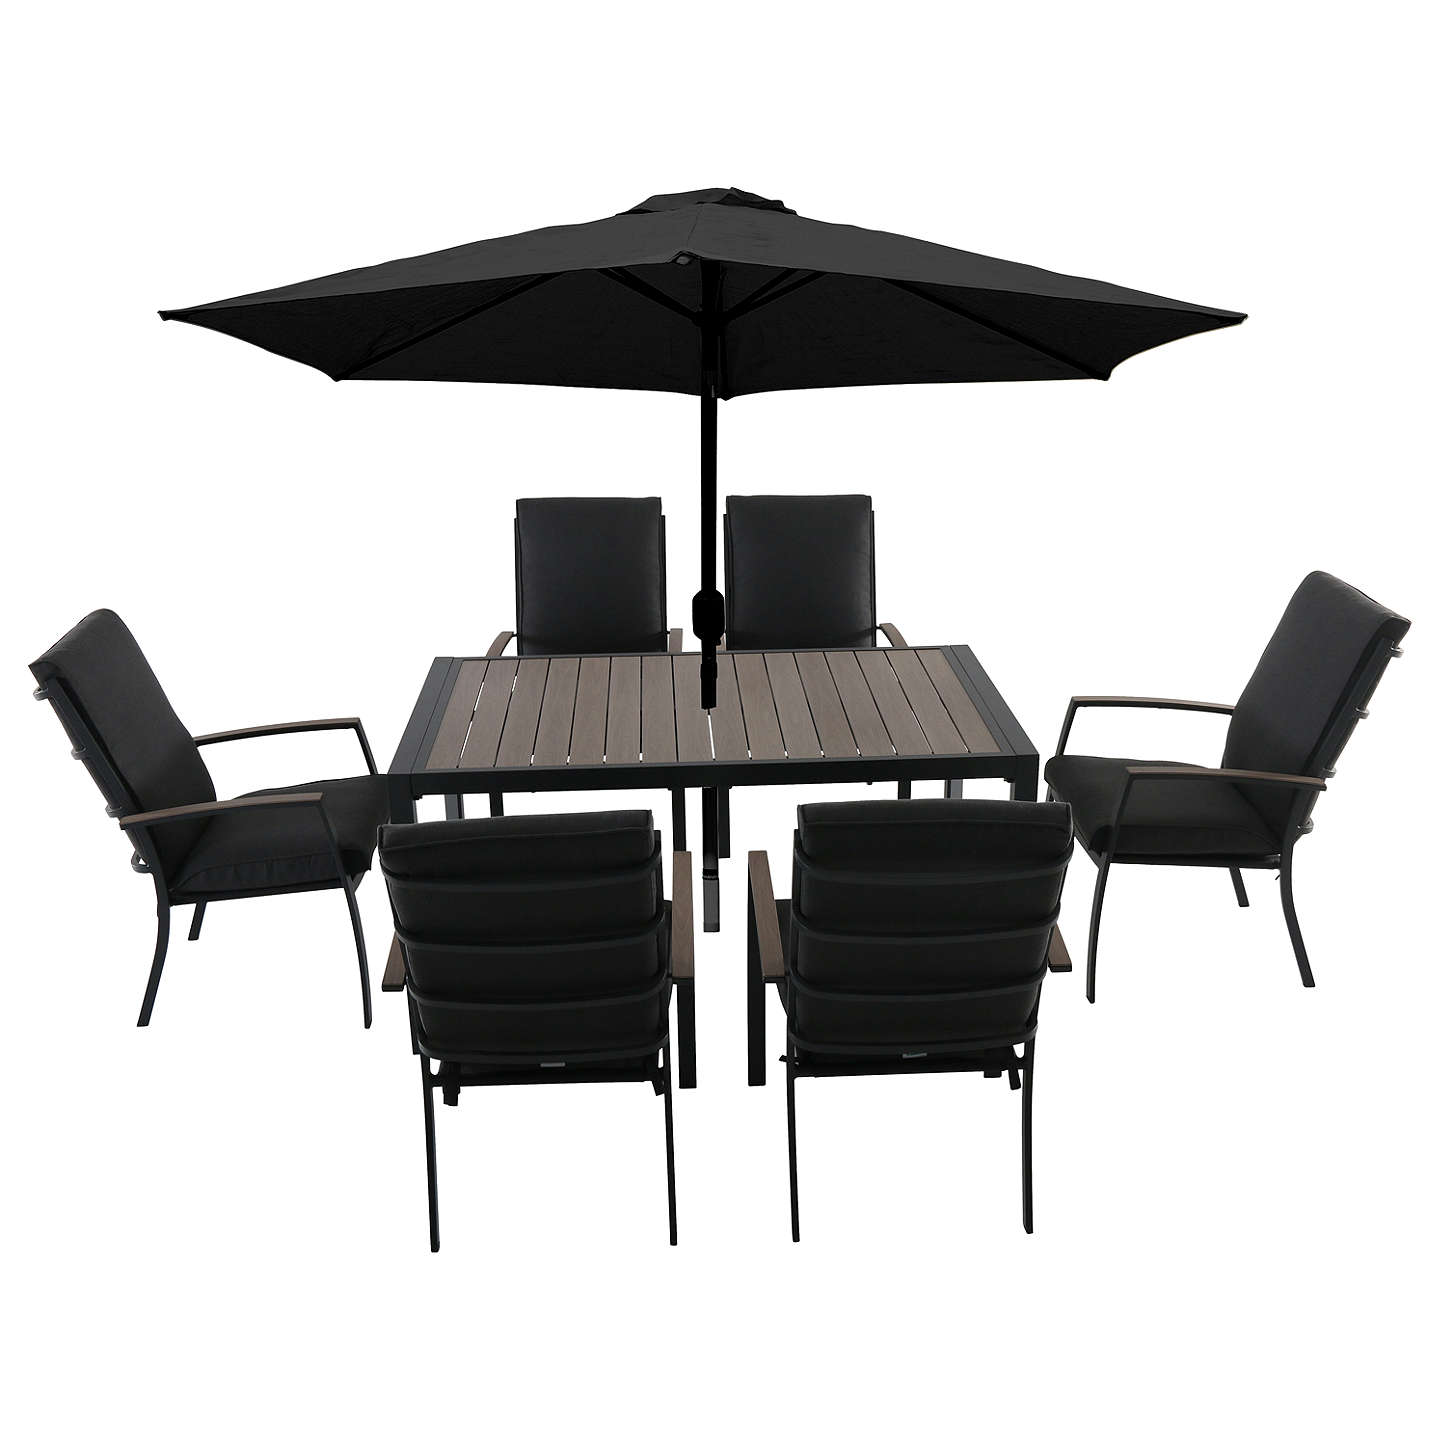 LG Outdoor Milan 6 Seater Garden Dining Table and Chairs Set with ...